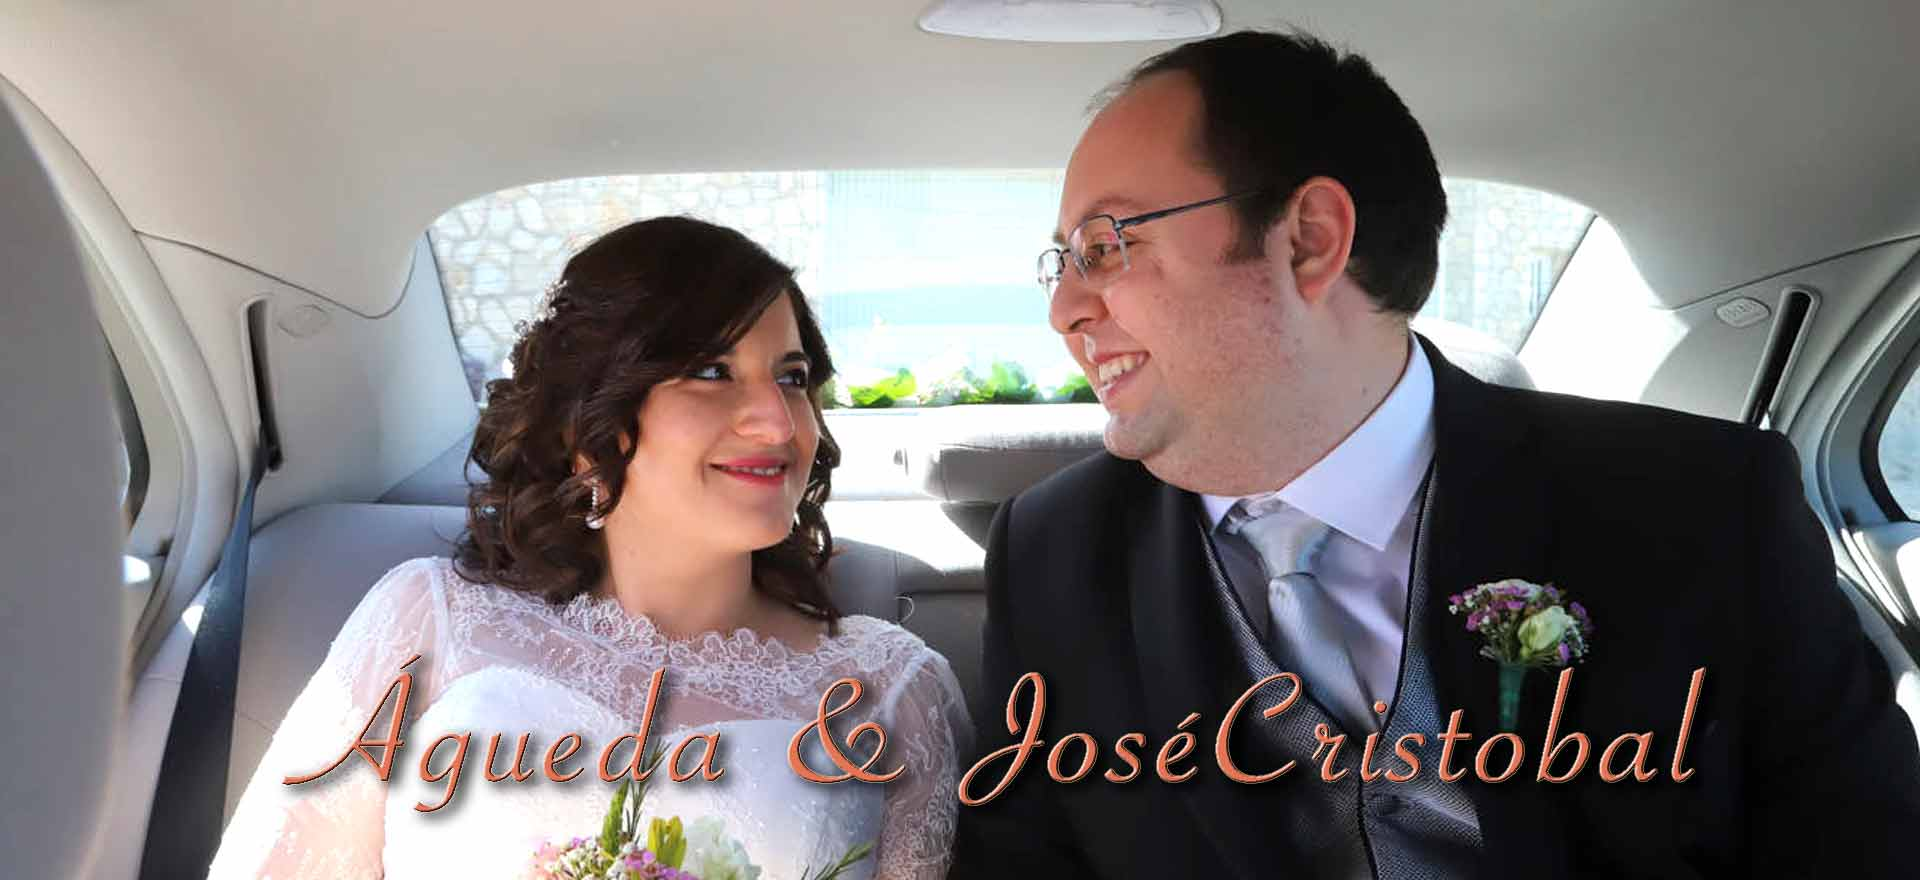 Video-boda-Agueda-y-Jose-Cristobal